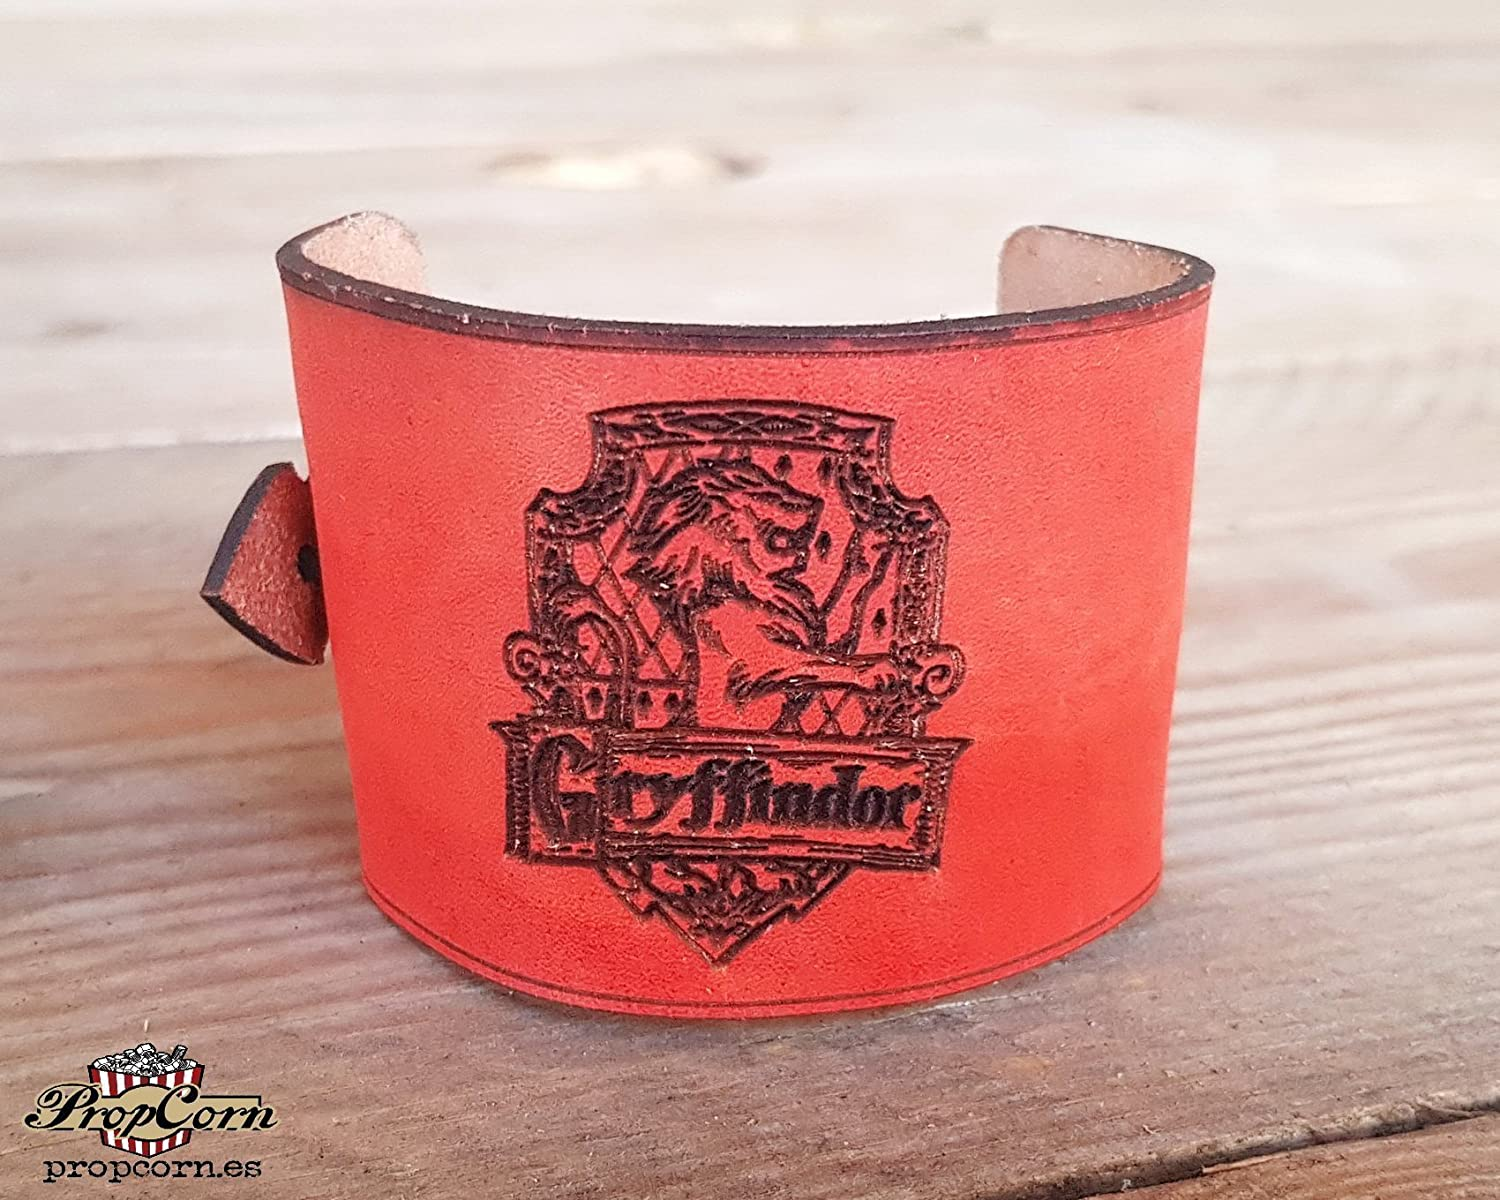 Harry Potter Gryffindor Wristband. Wears the colour of your Hogwarts House with Pride, made of high quality leather.